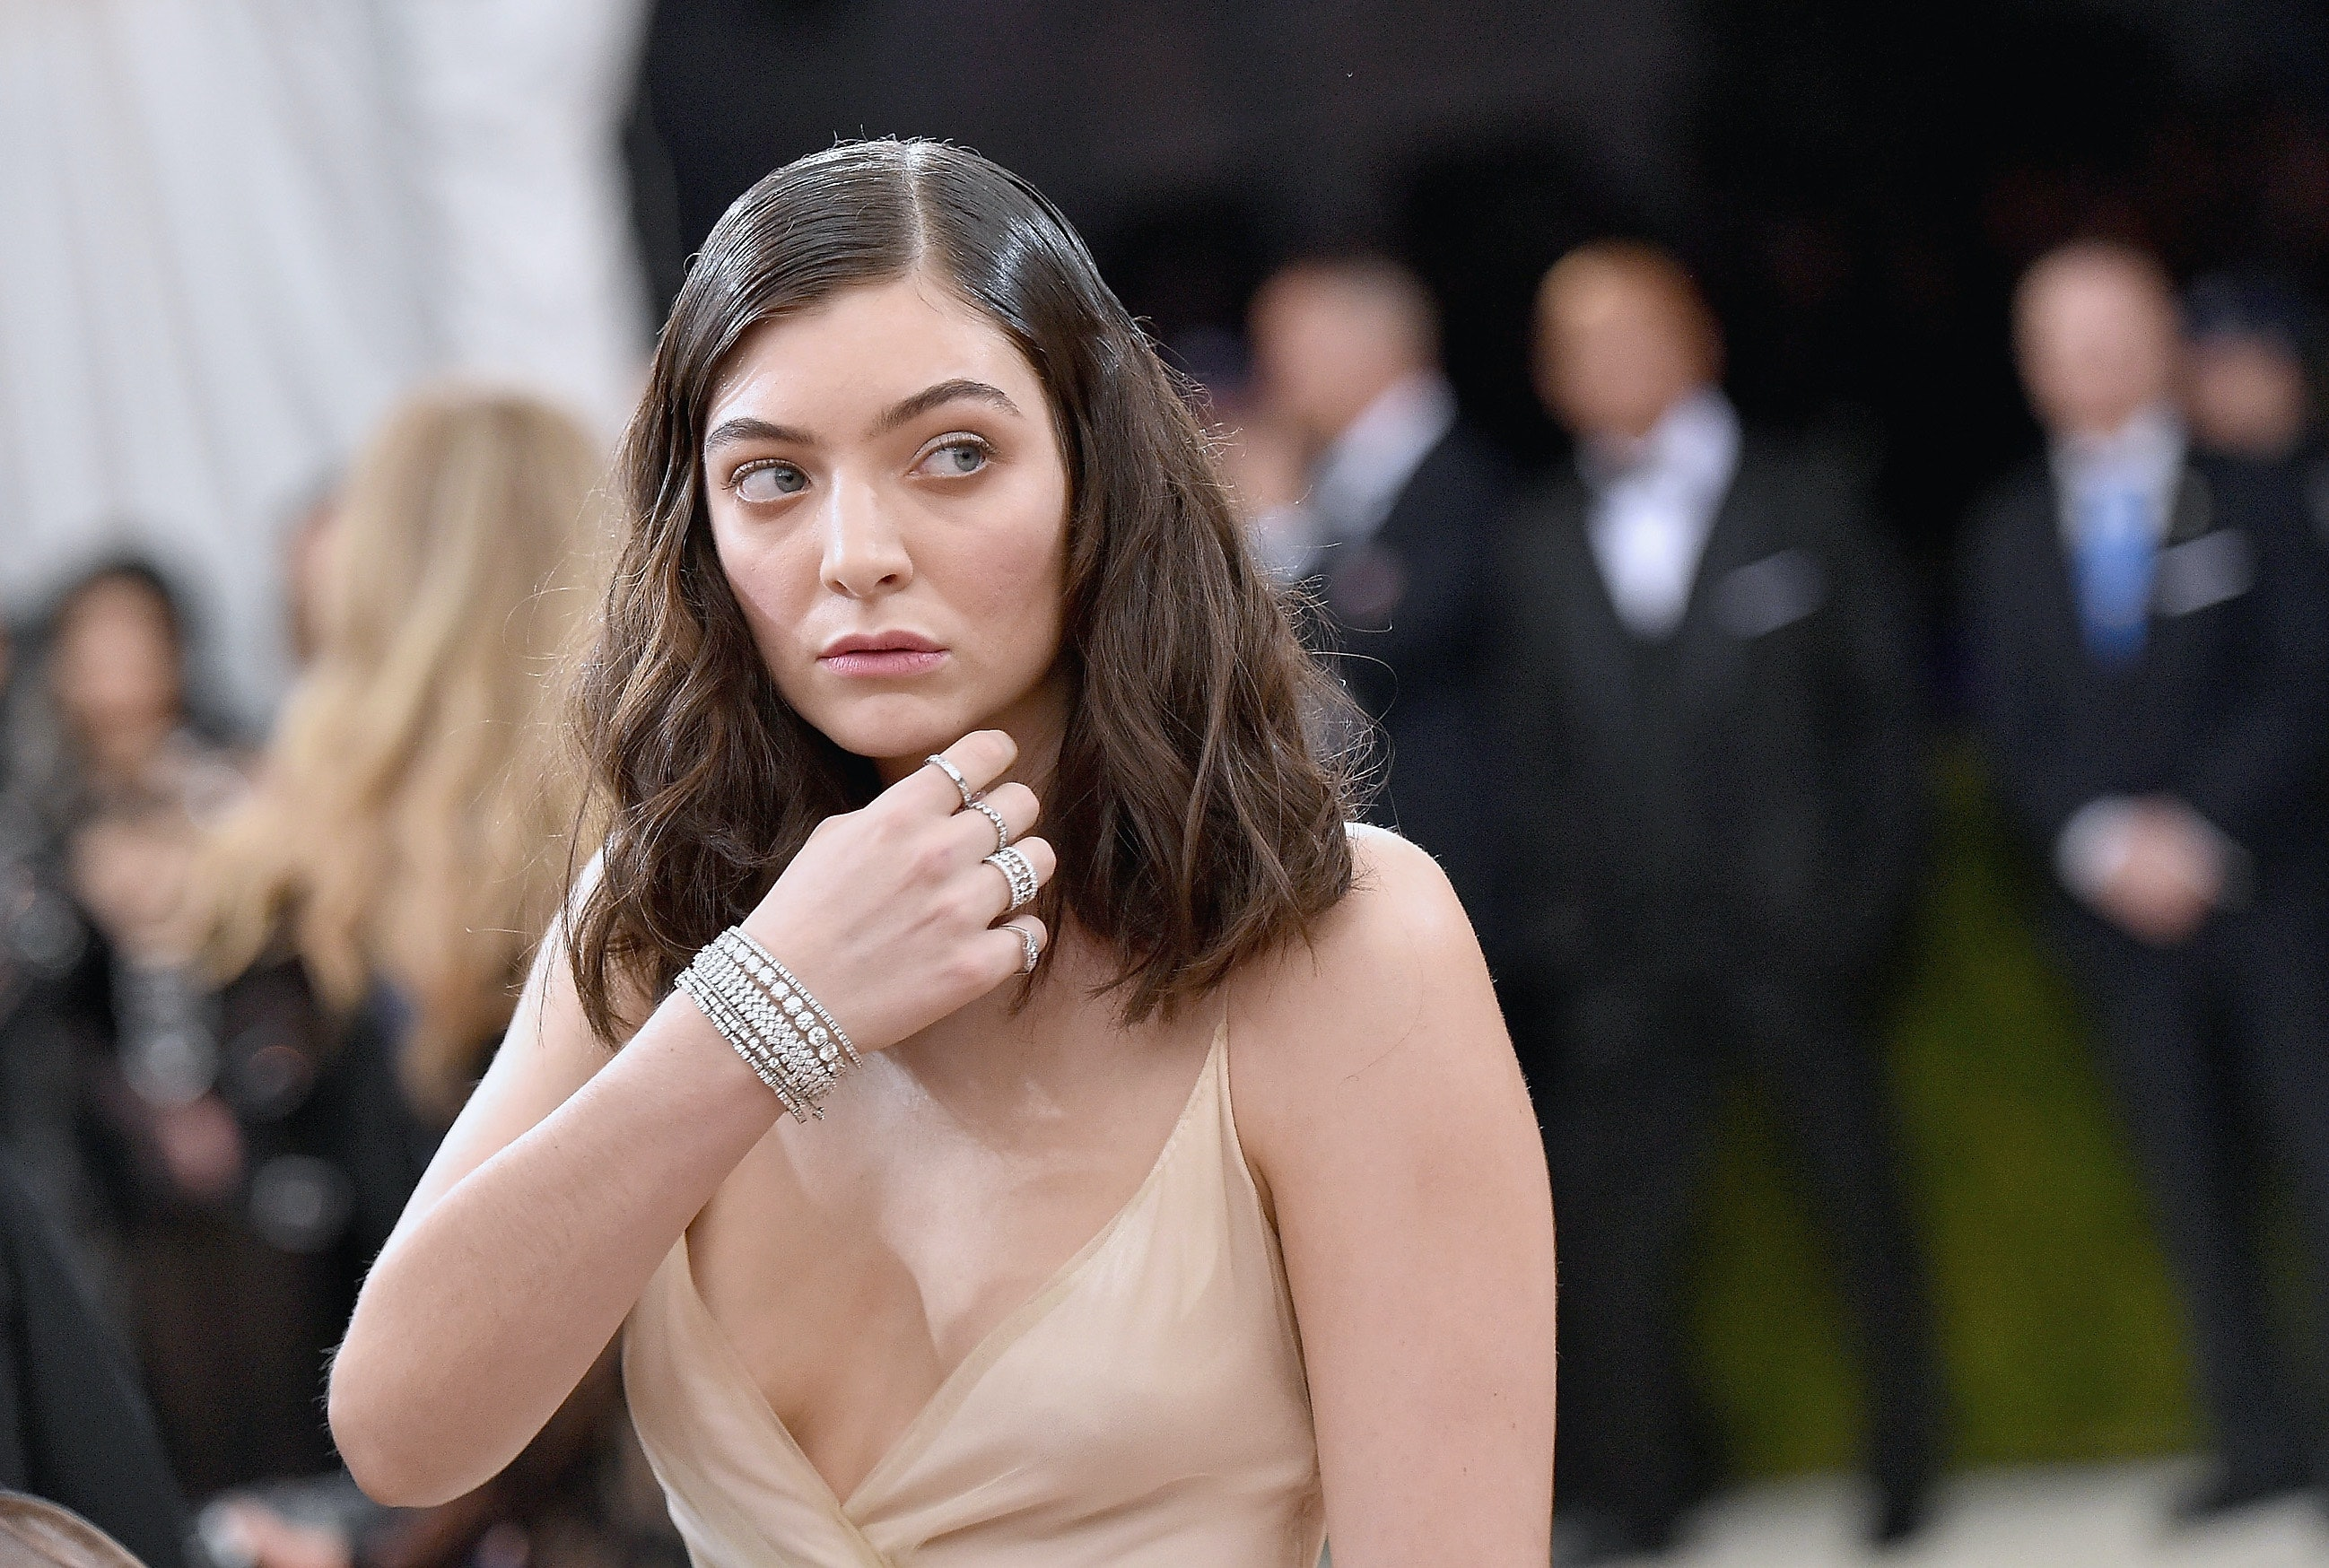 Lorde Unveils 'Melodrama' Release Date With Moving New Song 'Liability'